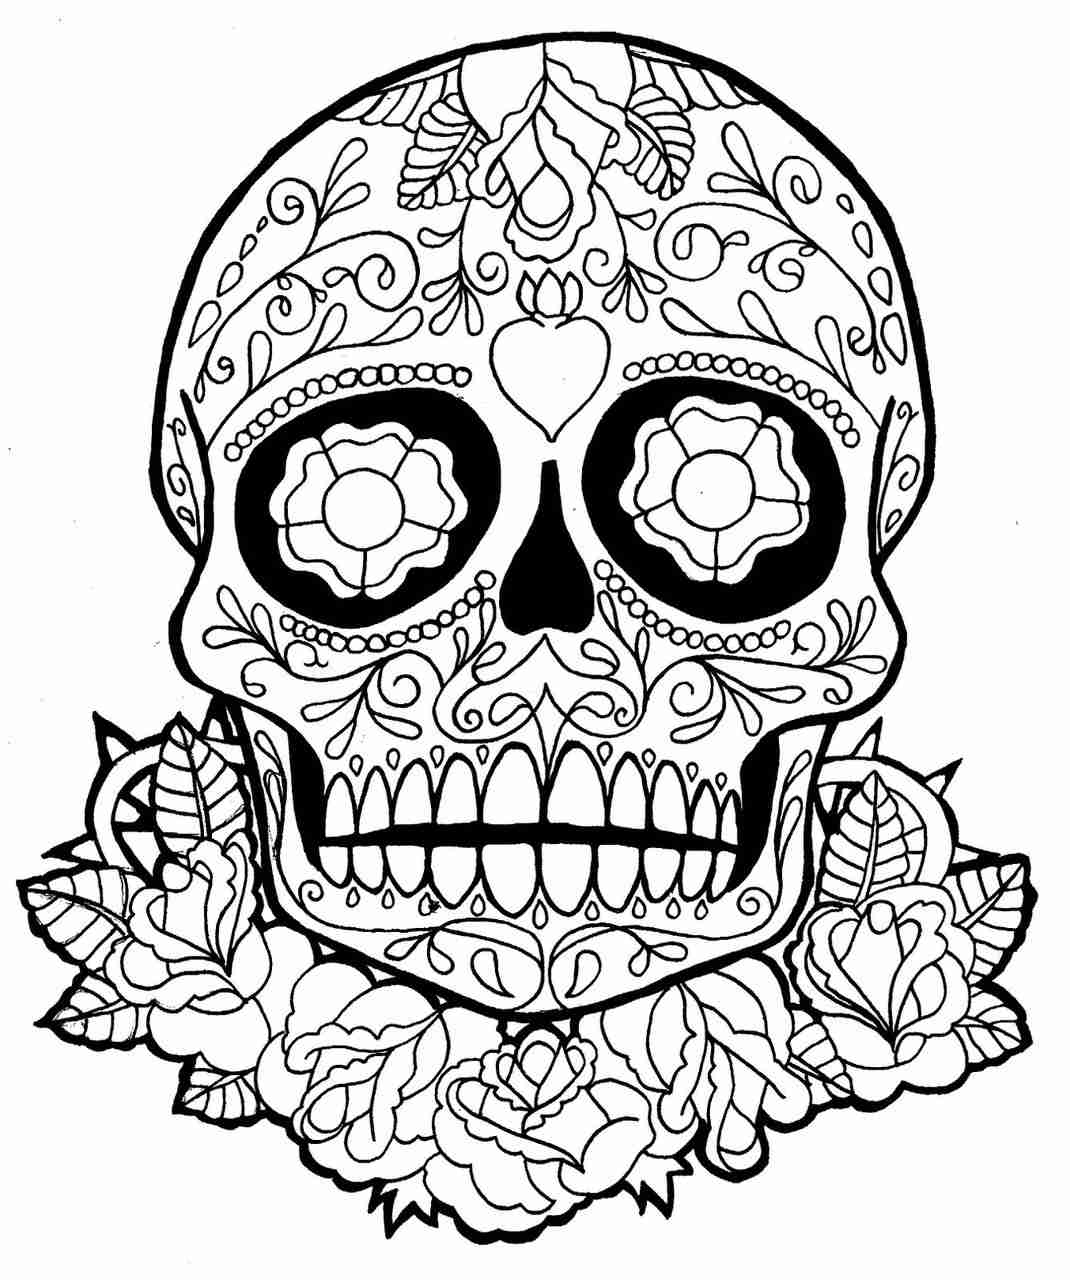 1070x1280 Day Of The Dead Mask Coloring Page In Dia De Los Muertos Pages